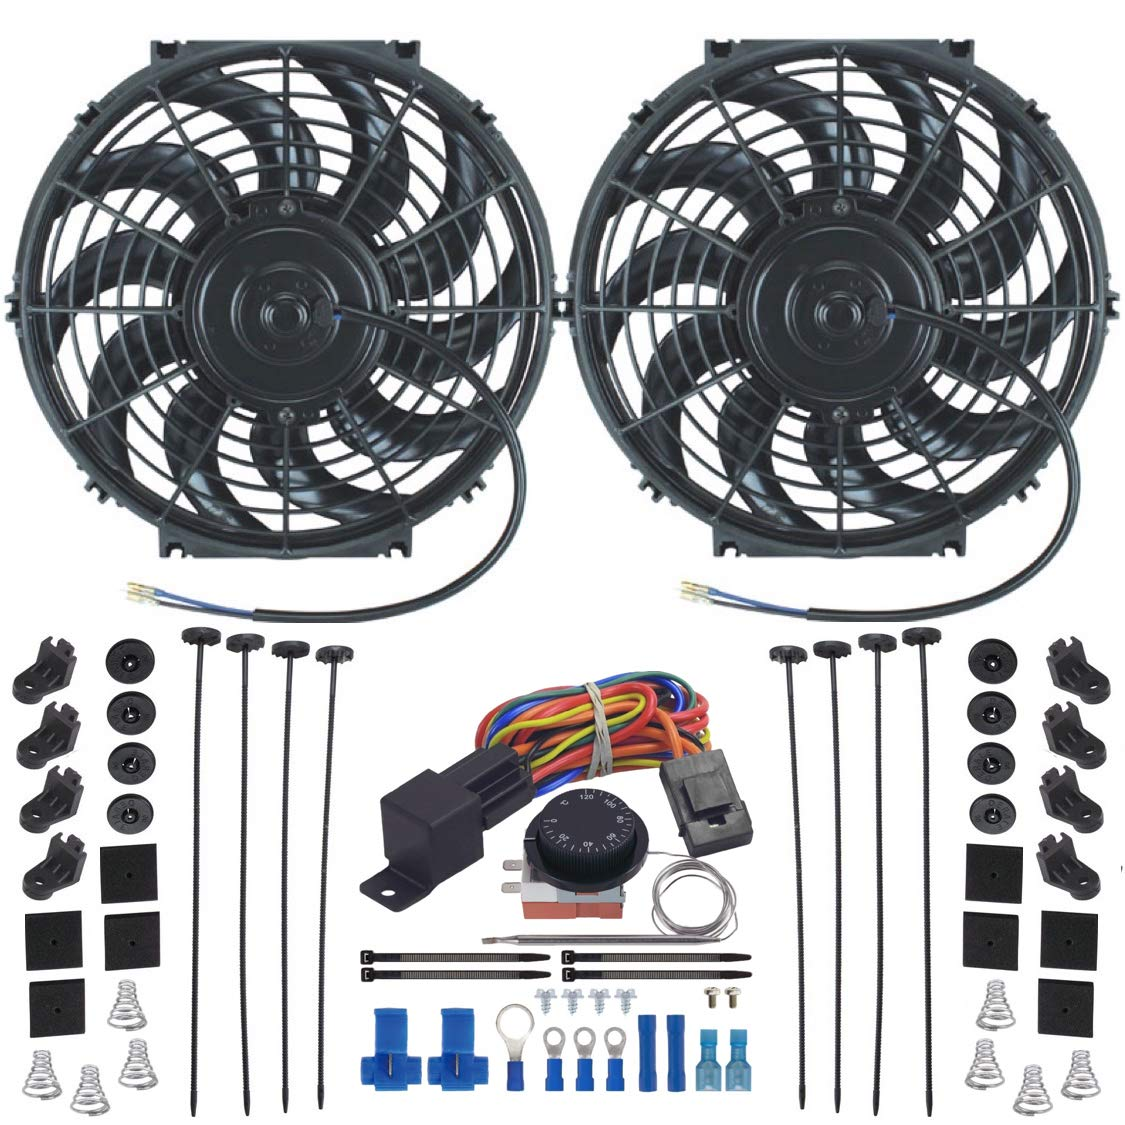 """American Volt Dual Reversible 12V Electric Engine Radiator Cooling Fan & Adjustable Thermostat Switch Kit (15"""" Inch)"""